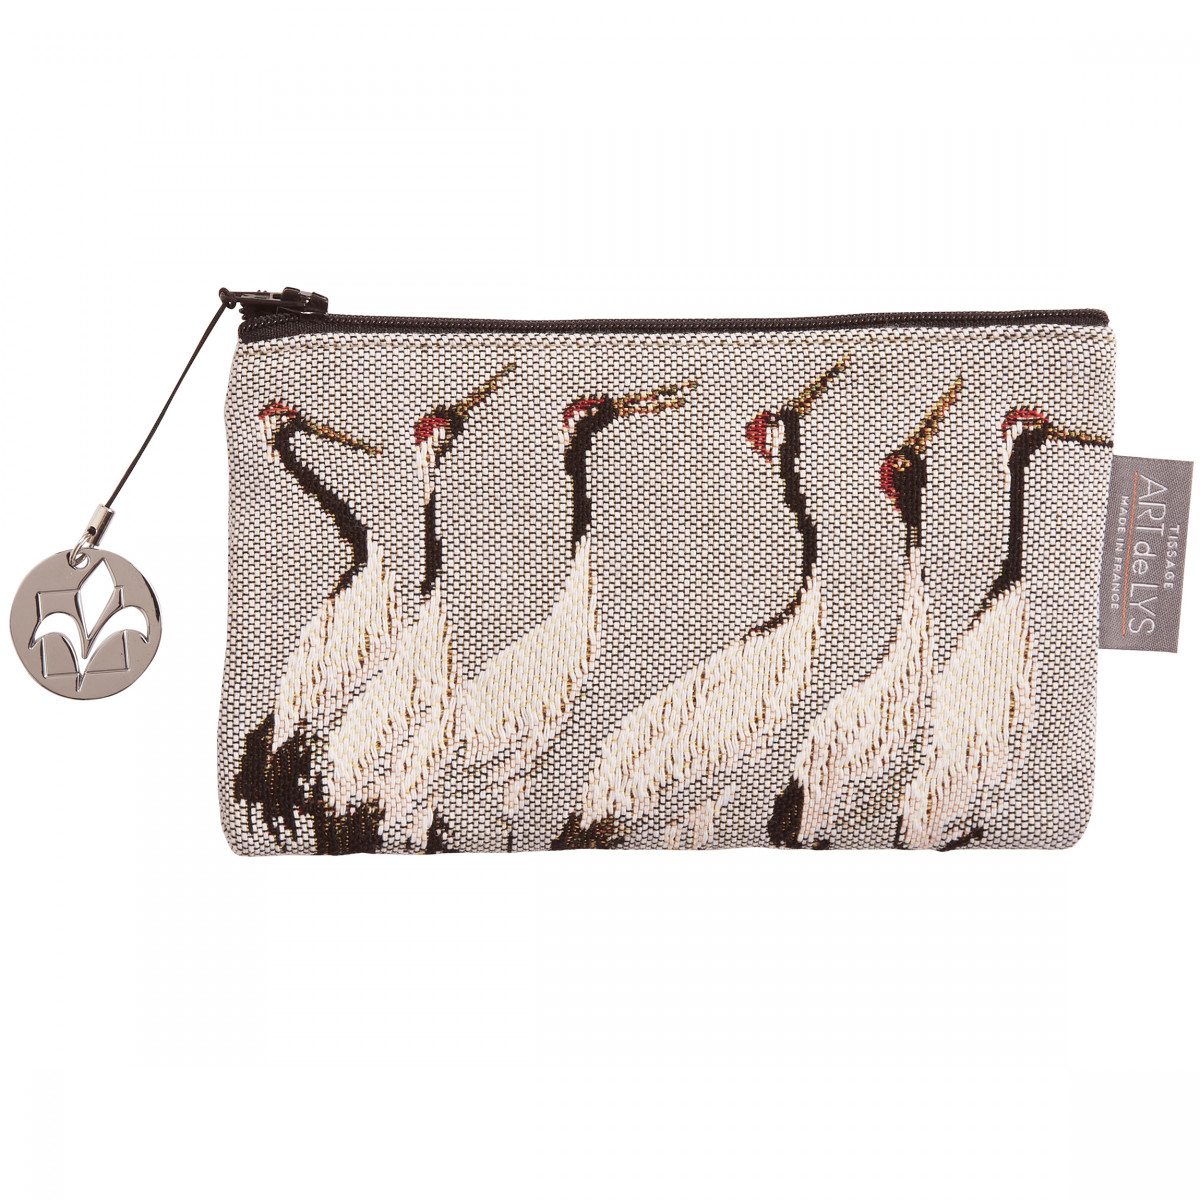 Pochette tapisserie grues blanches gris 11x17